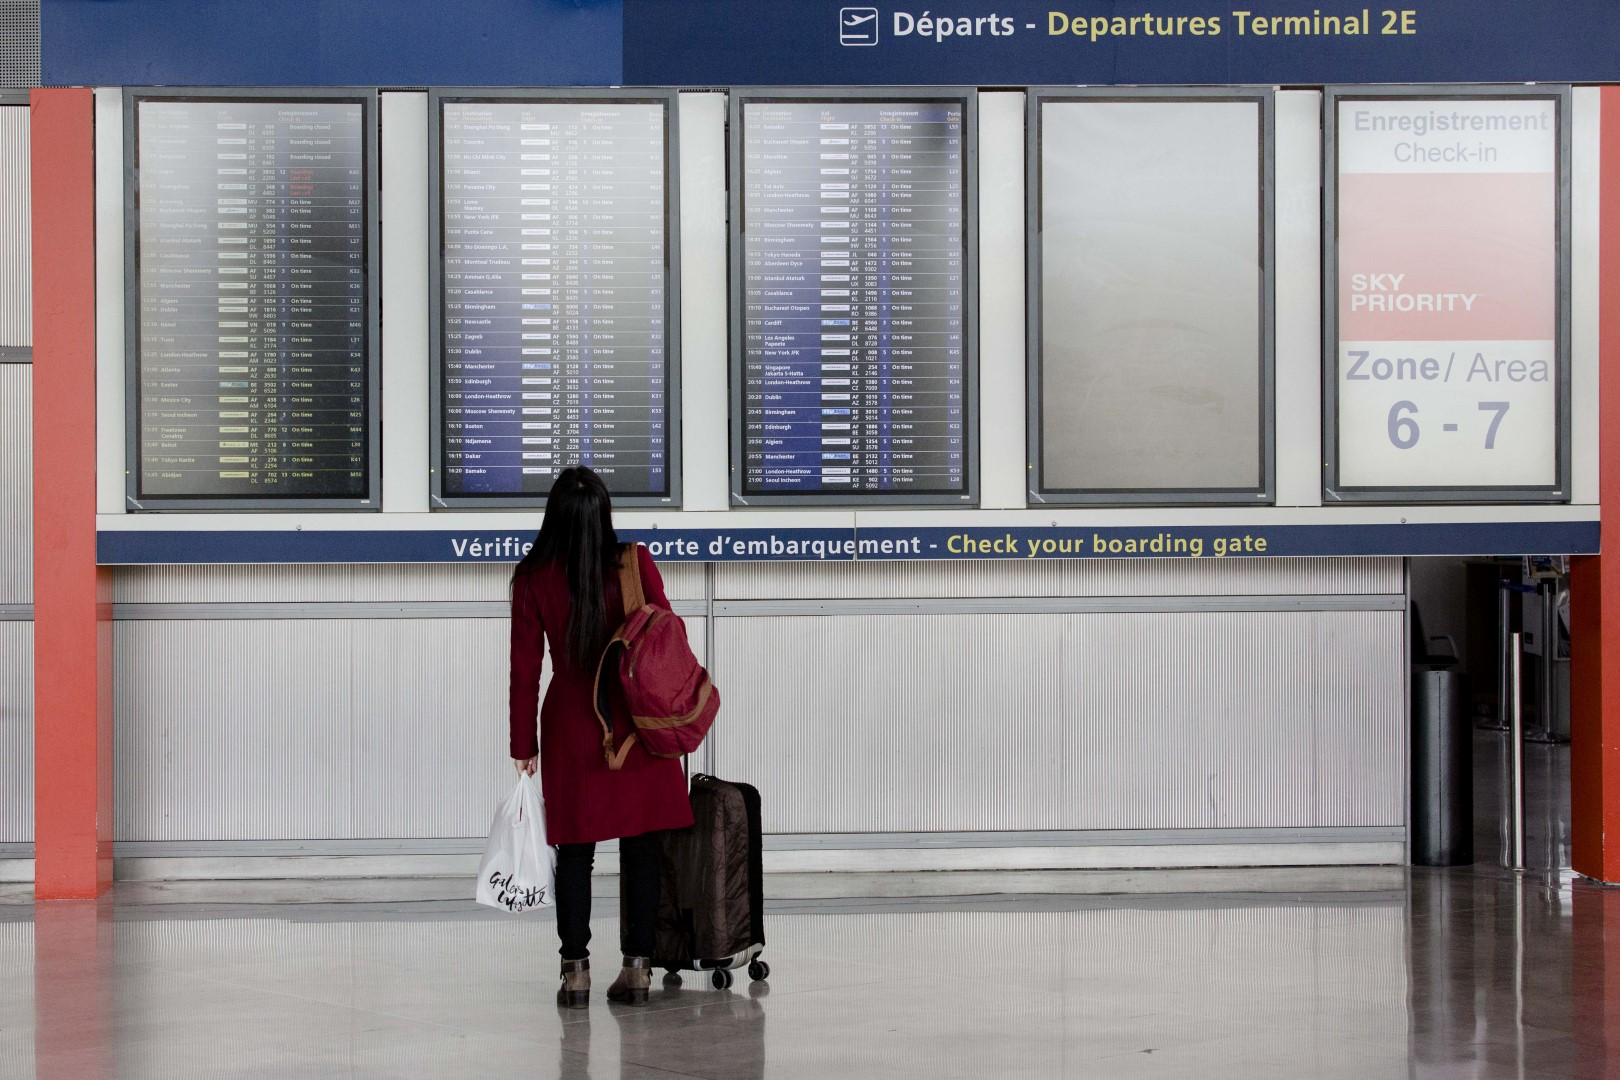 A passenger looks at flight departure information screens at Charles de Gaulle airport, operated by Aeroports de Paris, in Paris, France, on Thursday, Jan. 28, 2016. Air France-KLM Group Chief Executive Officer Alexandre De Juniac is negotiating with unions representing cabin and ground crews at the Air France brand and Dutch division KLM, as well as pilots at the French unit, after pulling a plan to expand its Transavia low-cost arm across Europe. Photographer: Marlene Awaad/Bloomberg